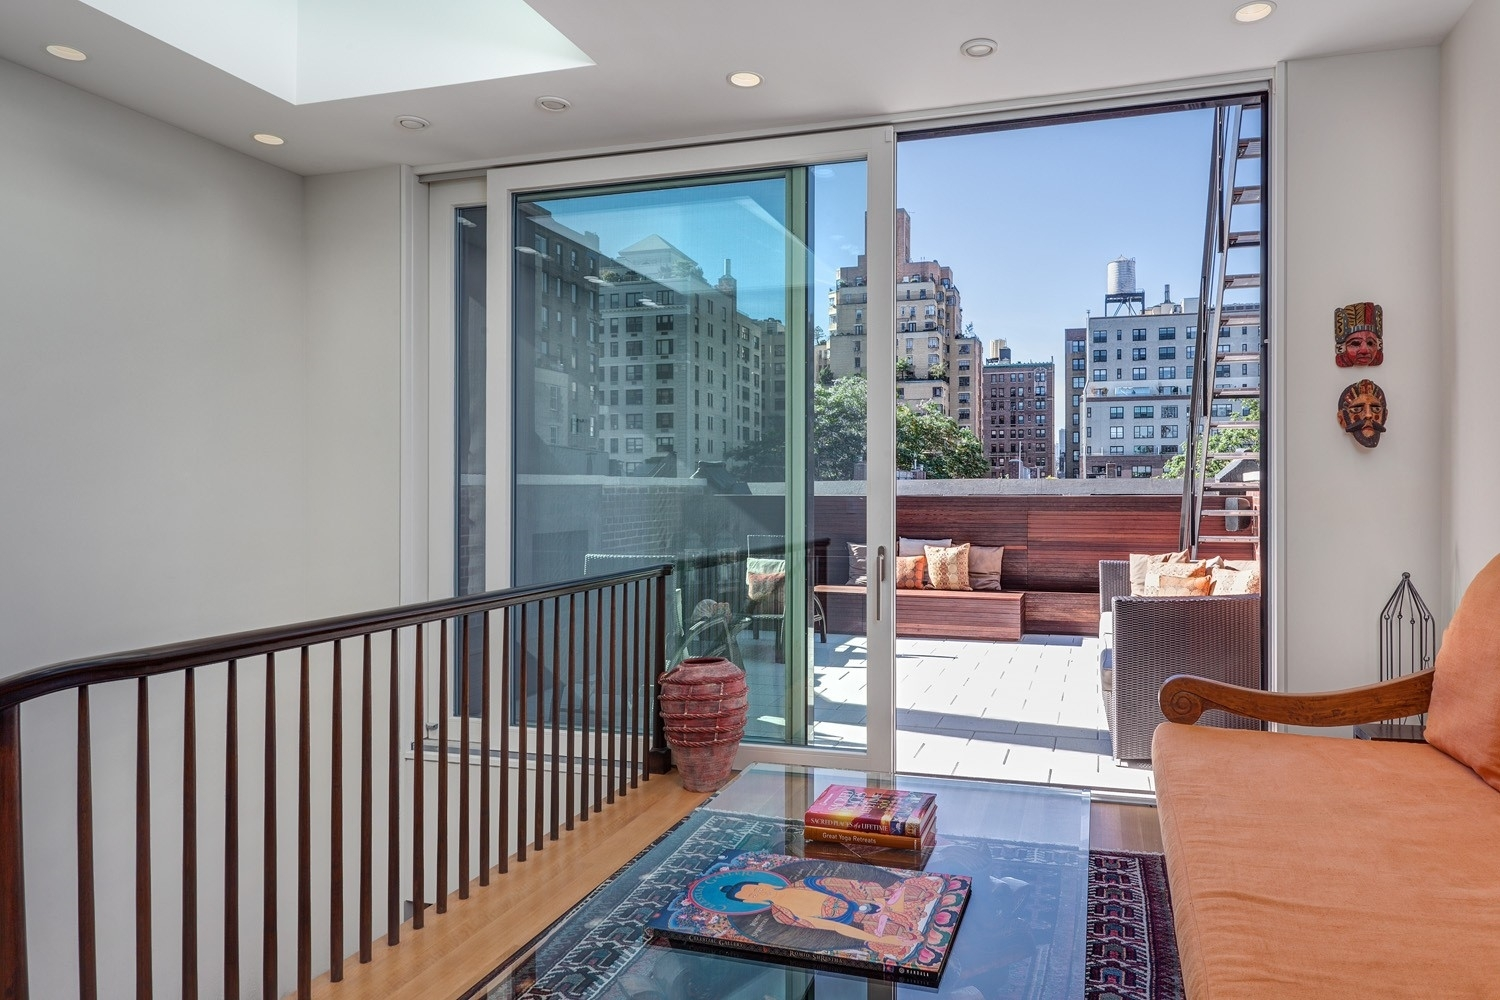 19. Single Family Townhouse for Sale at Upper West Side, New York, NY 10024